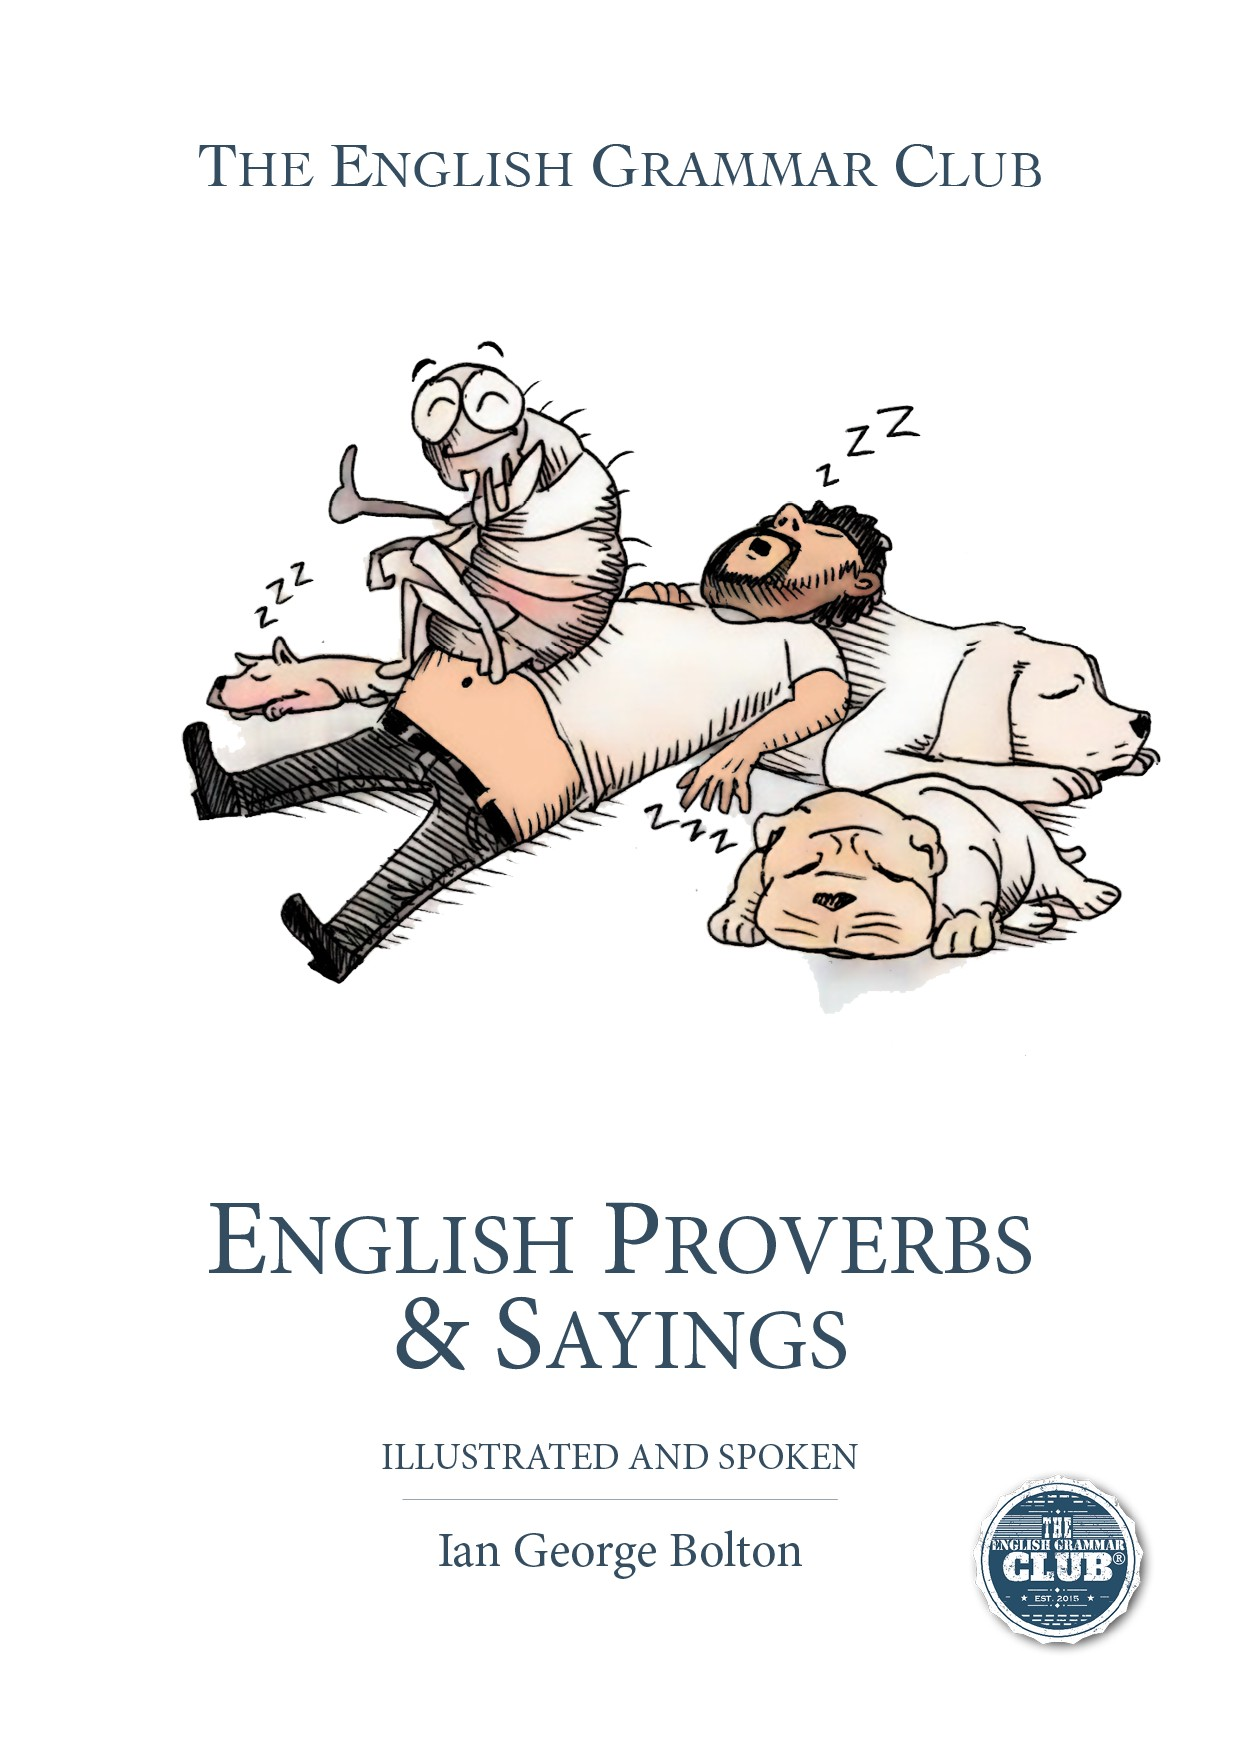 English Proverbs & Sayings